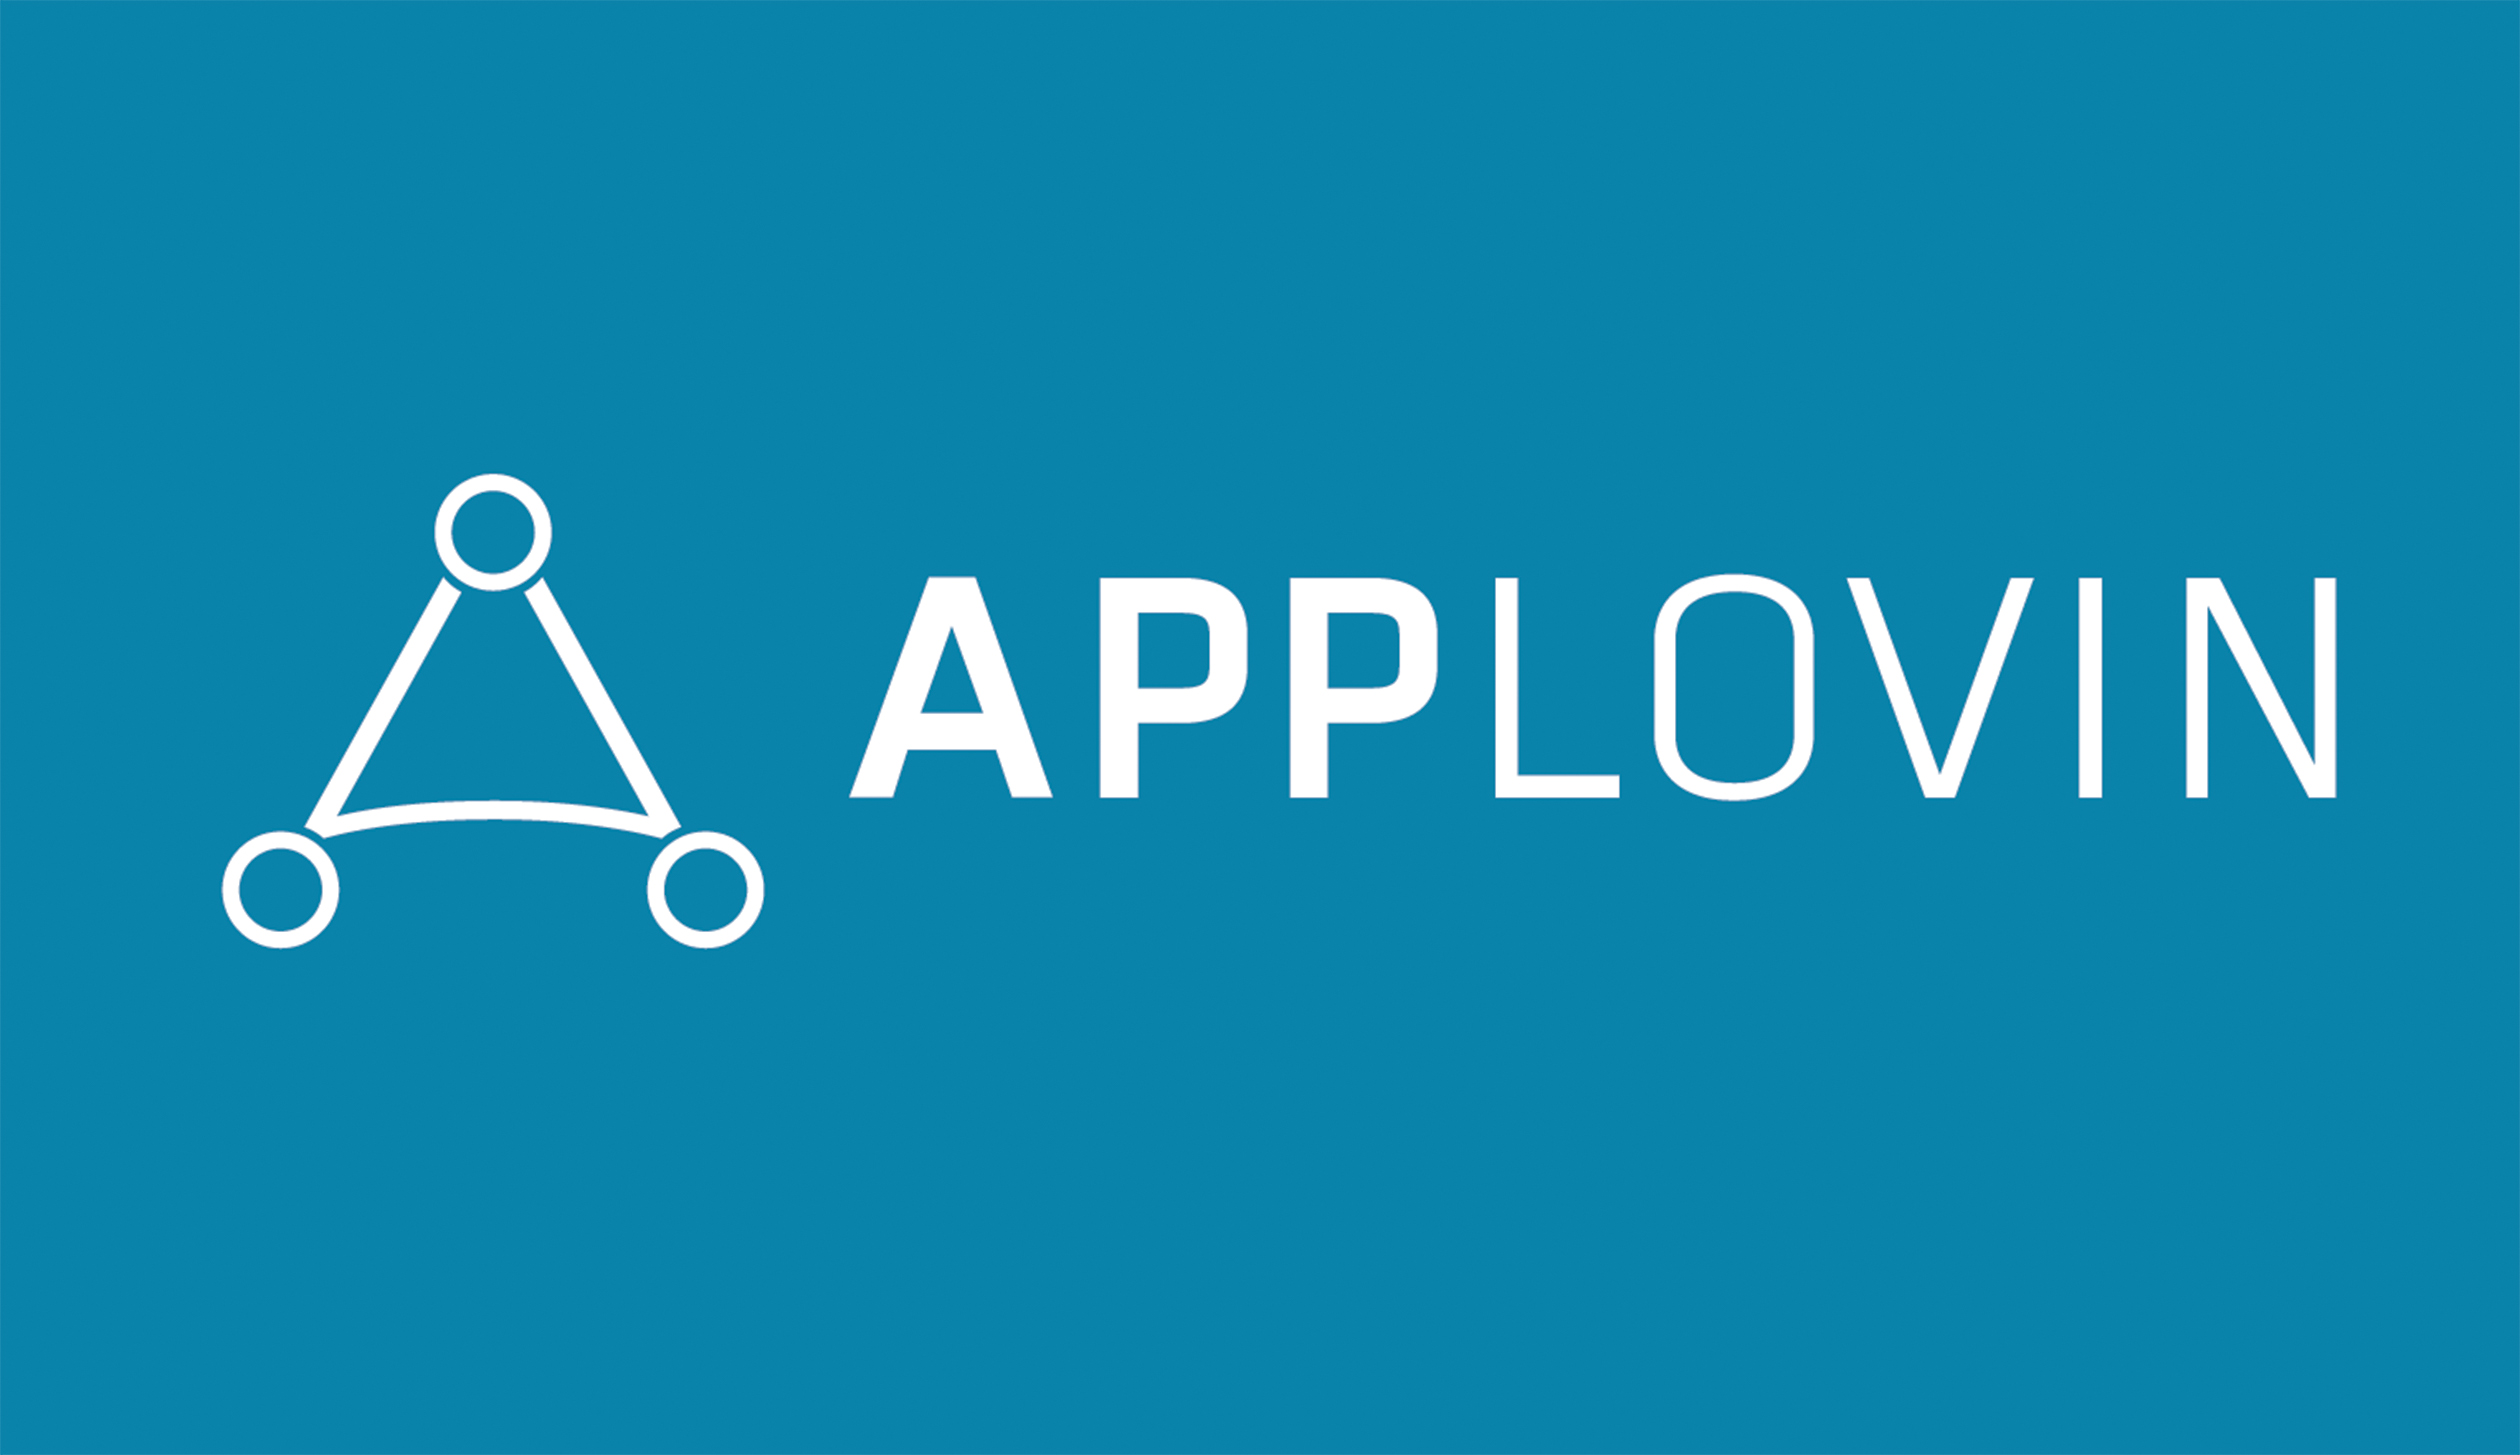 AppLovin is Snapped up for $1.4B, by a Chinese Firm-Orient Hontai Capital